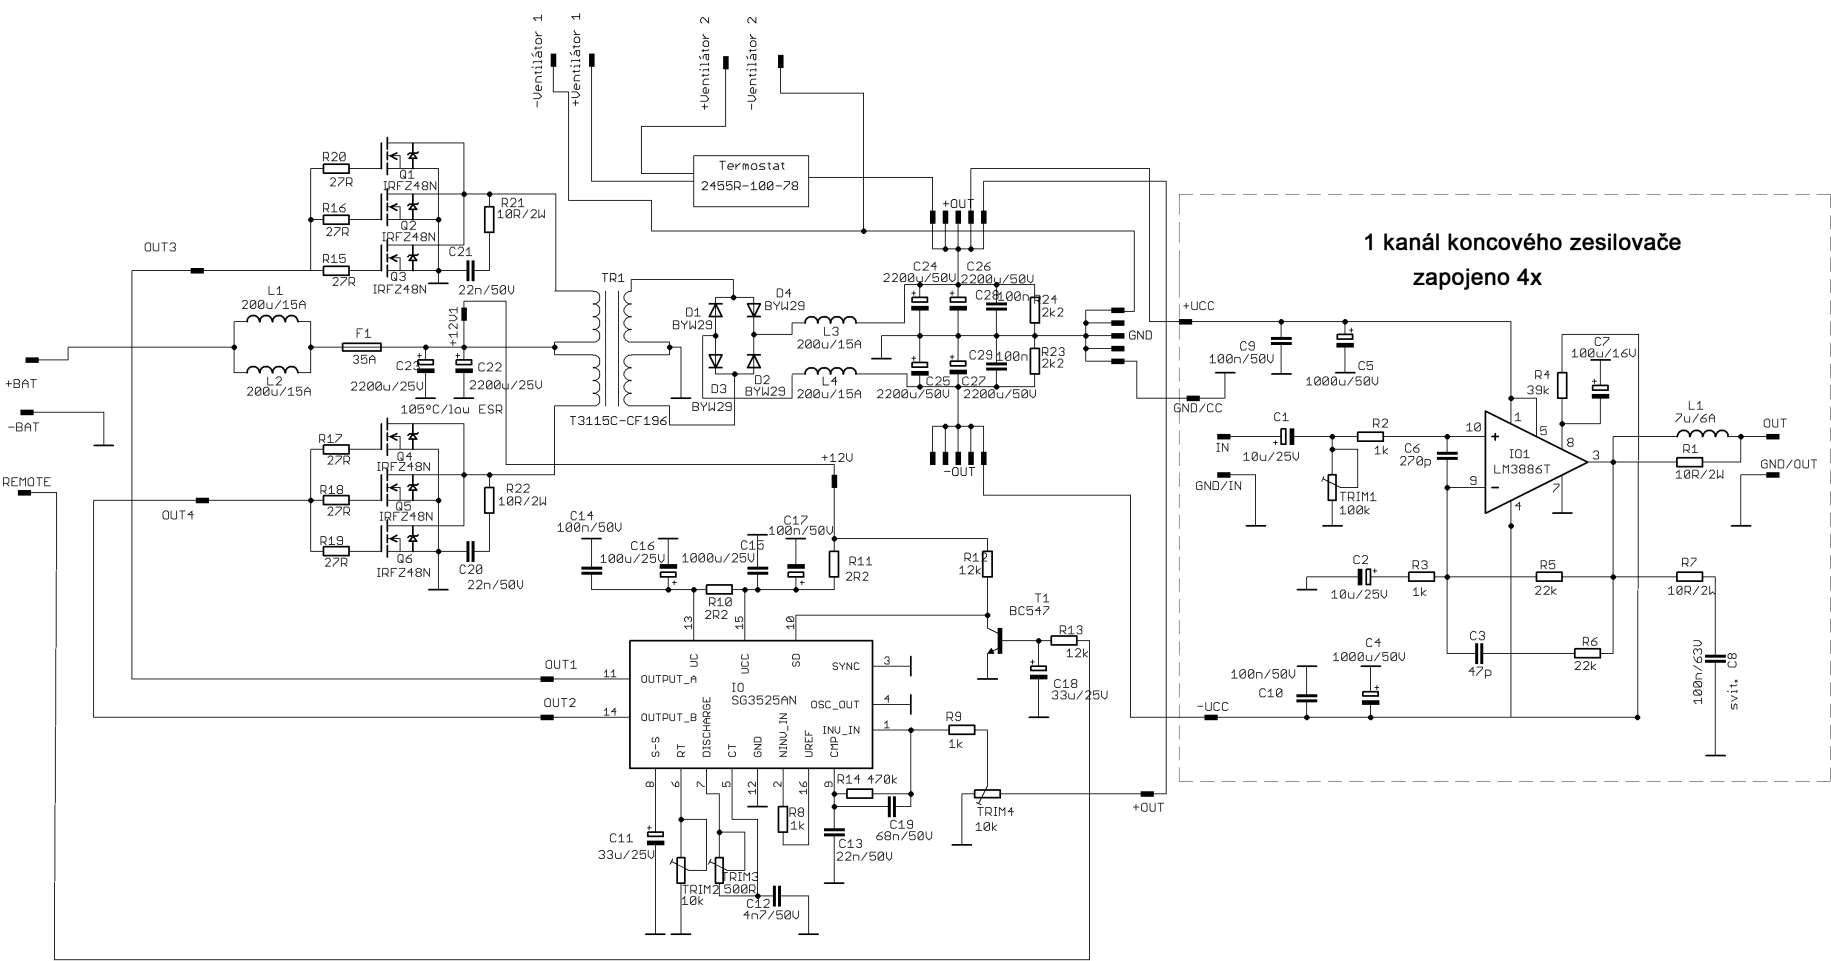 Power Supply 5v 2a By Ic 78s05 besides Pool Light Wiring Diagram besides 2 likewise World Map Showing Types Of Government besides Cat Brain Diagram. on buck transformer diagram